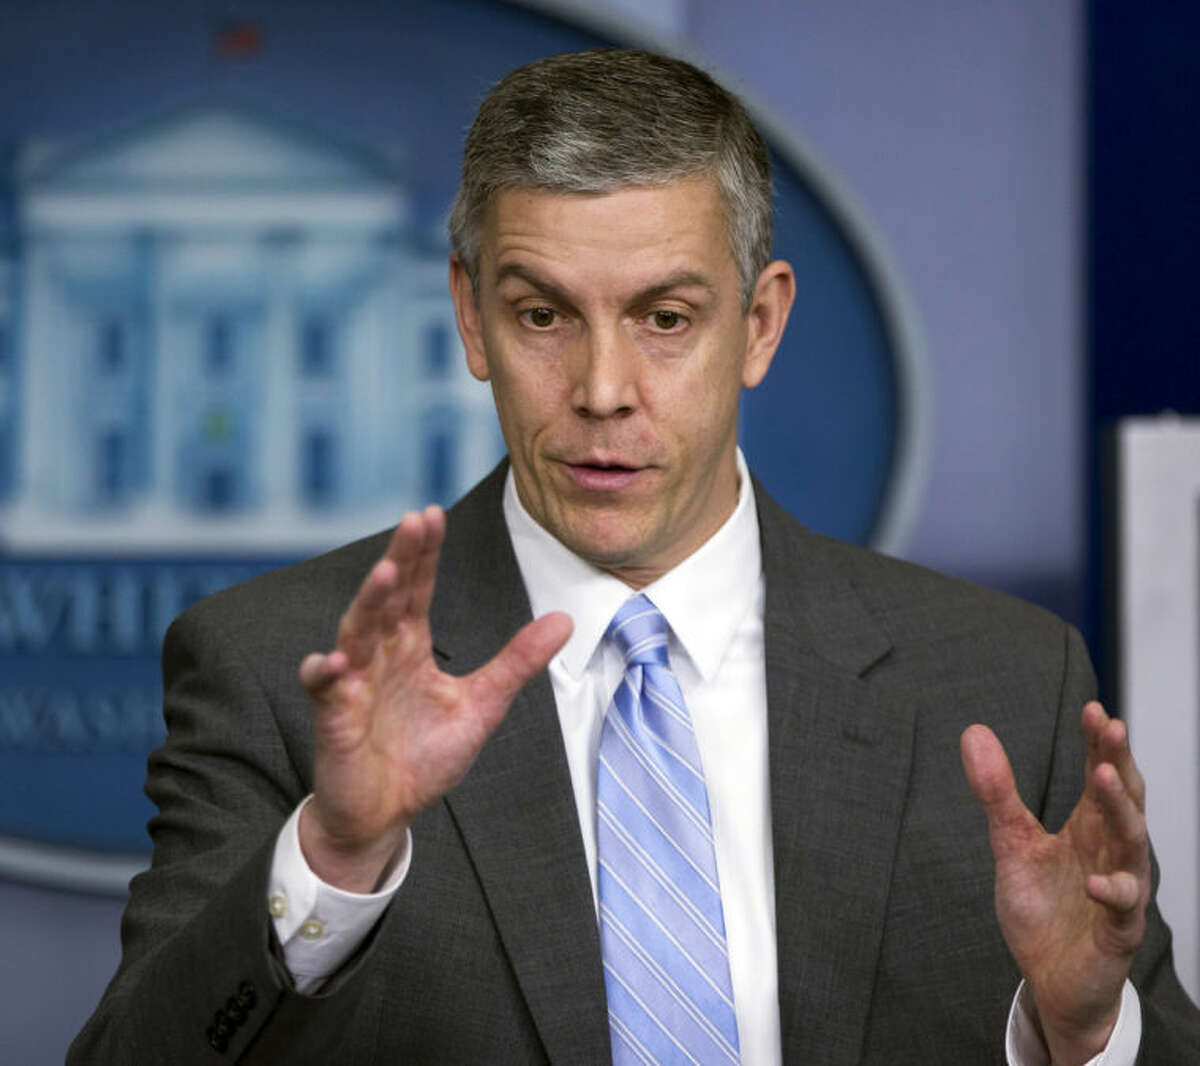 ** HOLD FOR RELEASE UNTIL 12:01 A.M. EDT ON FRIDAY, MARCH 21, 2014 ** FILE - In this March 14, 2014, file photo, Education Secretary Arne Duncan speaks to reporters during briefing in the Brady Press Briefing Room of the White House in Washington. Even preschoolers are getting suspended from U.S. public schools, and they're disproportionately black, a trend that continues up through the later grades. Data to be released Friday, March 21, 2014, by the Education Department's civil rights arm finds that black children represent about 18 percent of children enrolled in preschool programs in schools, but almost half of the students suspended more than once. Six percent of the nation's districts with preschools reported suspending at least one preschool child.